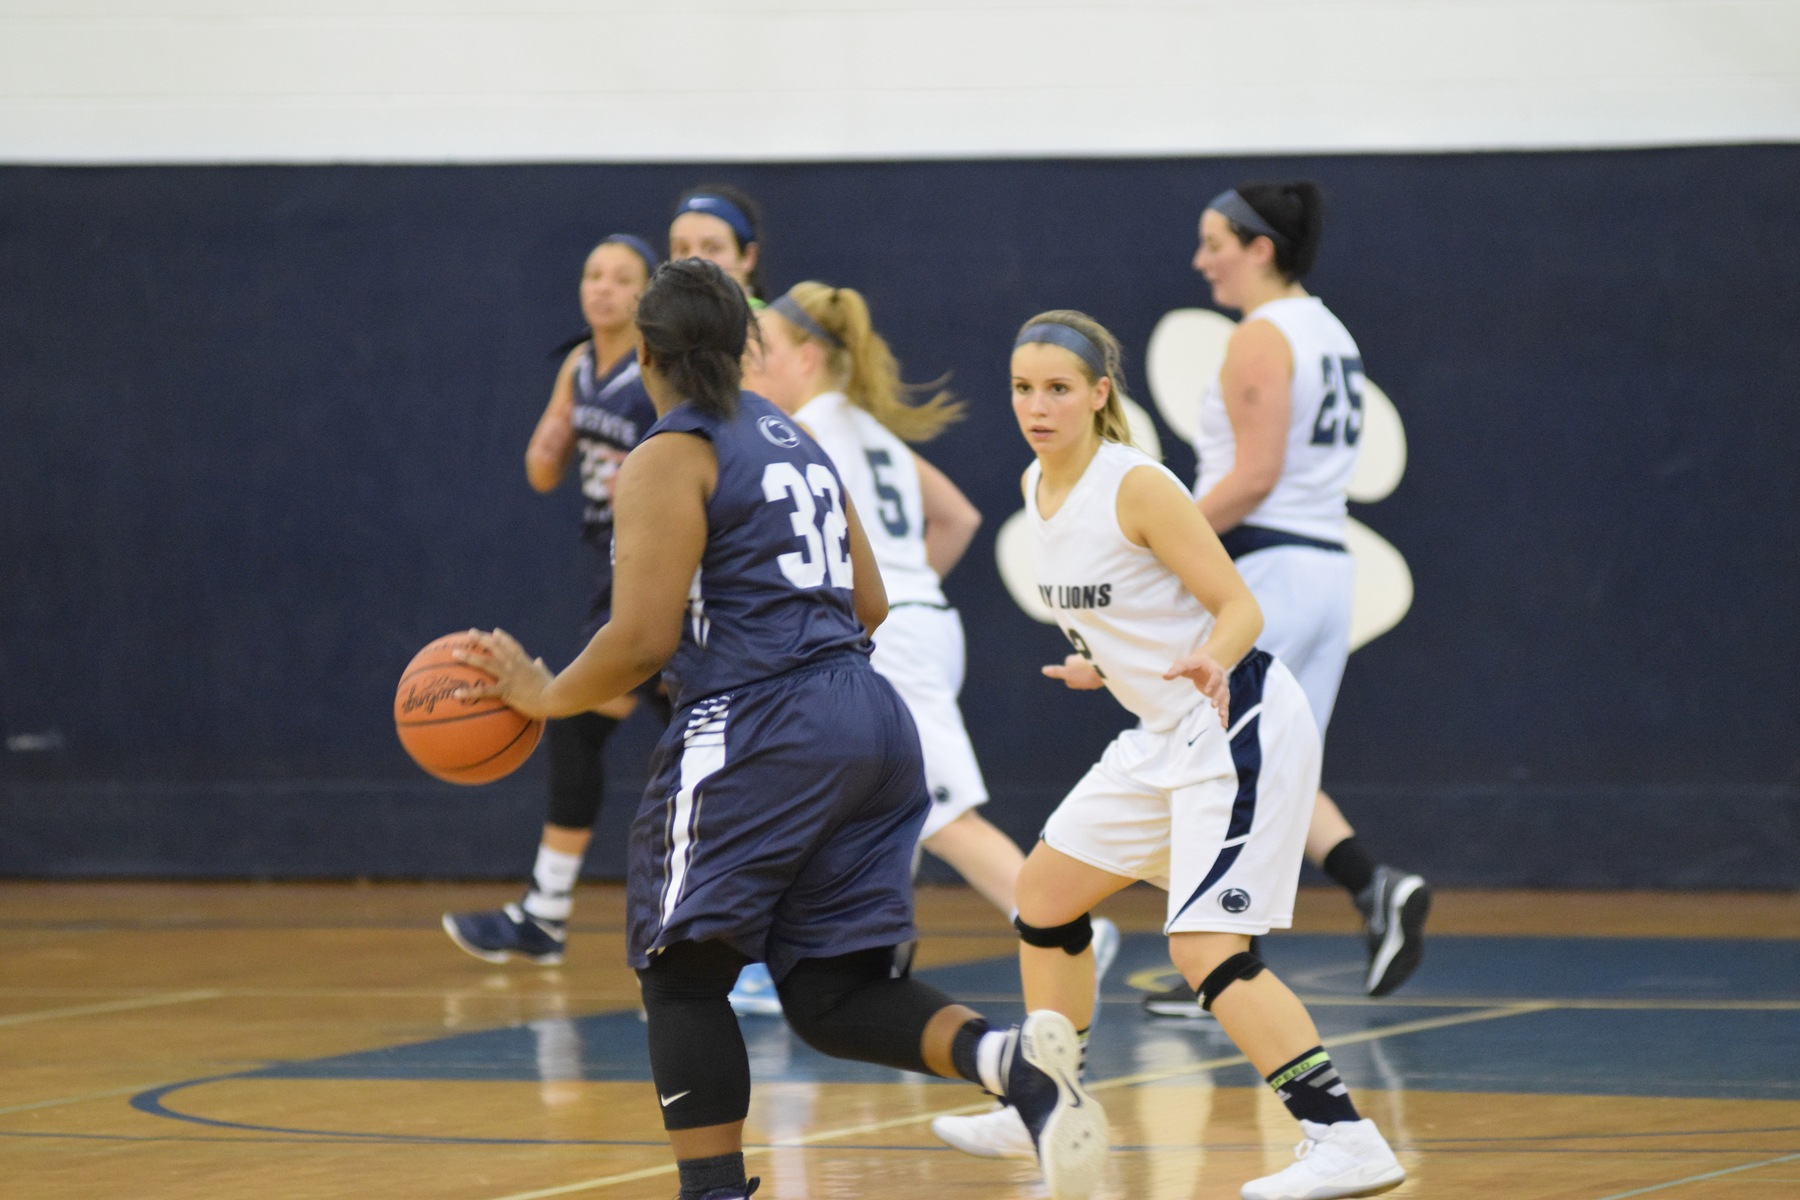 Lady Lions  dominated by #3 ranked Lehigh Valley.